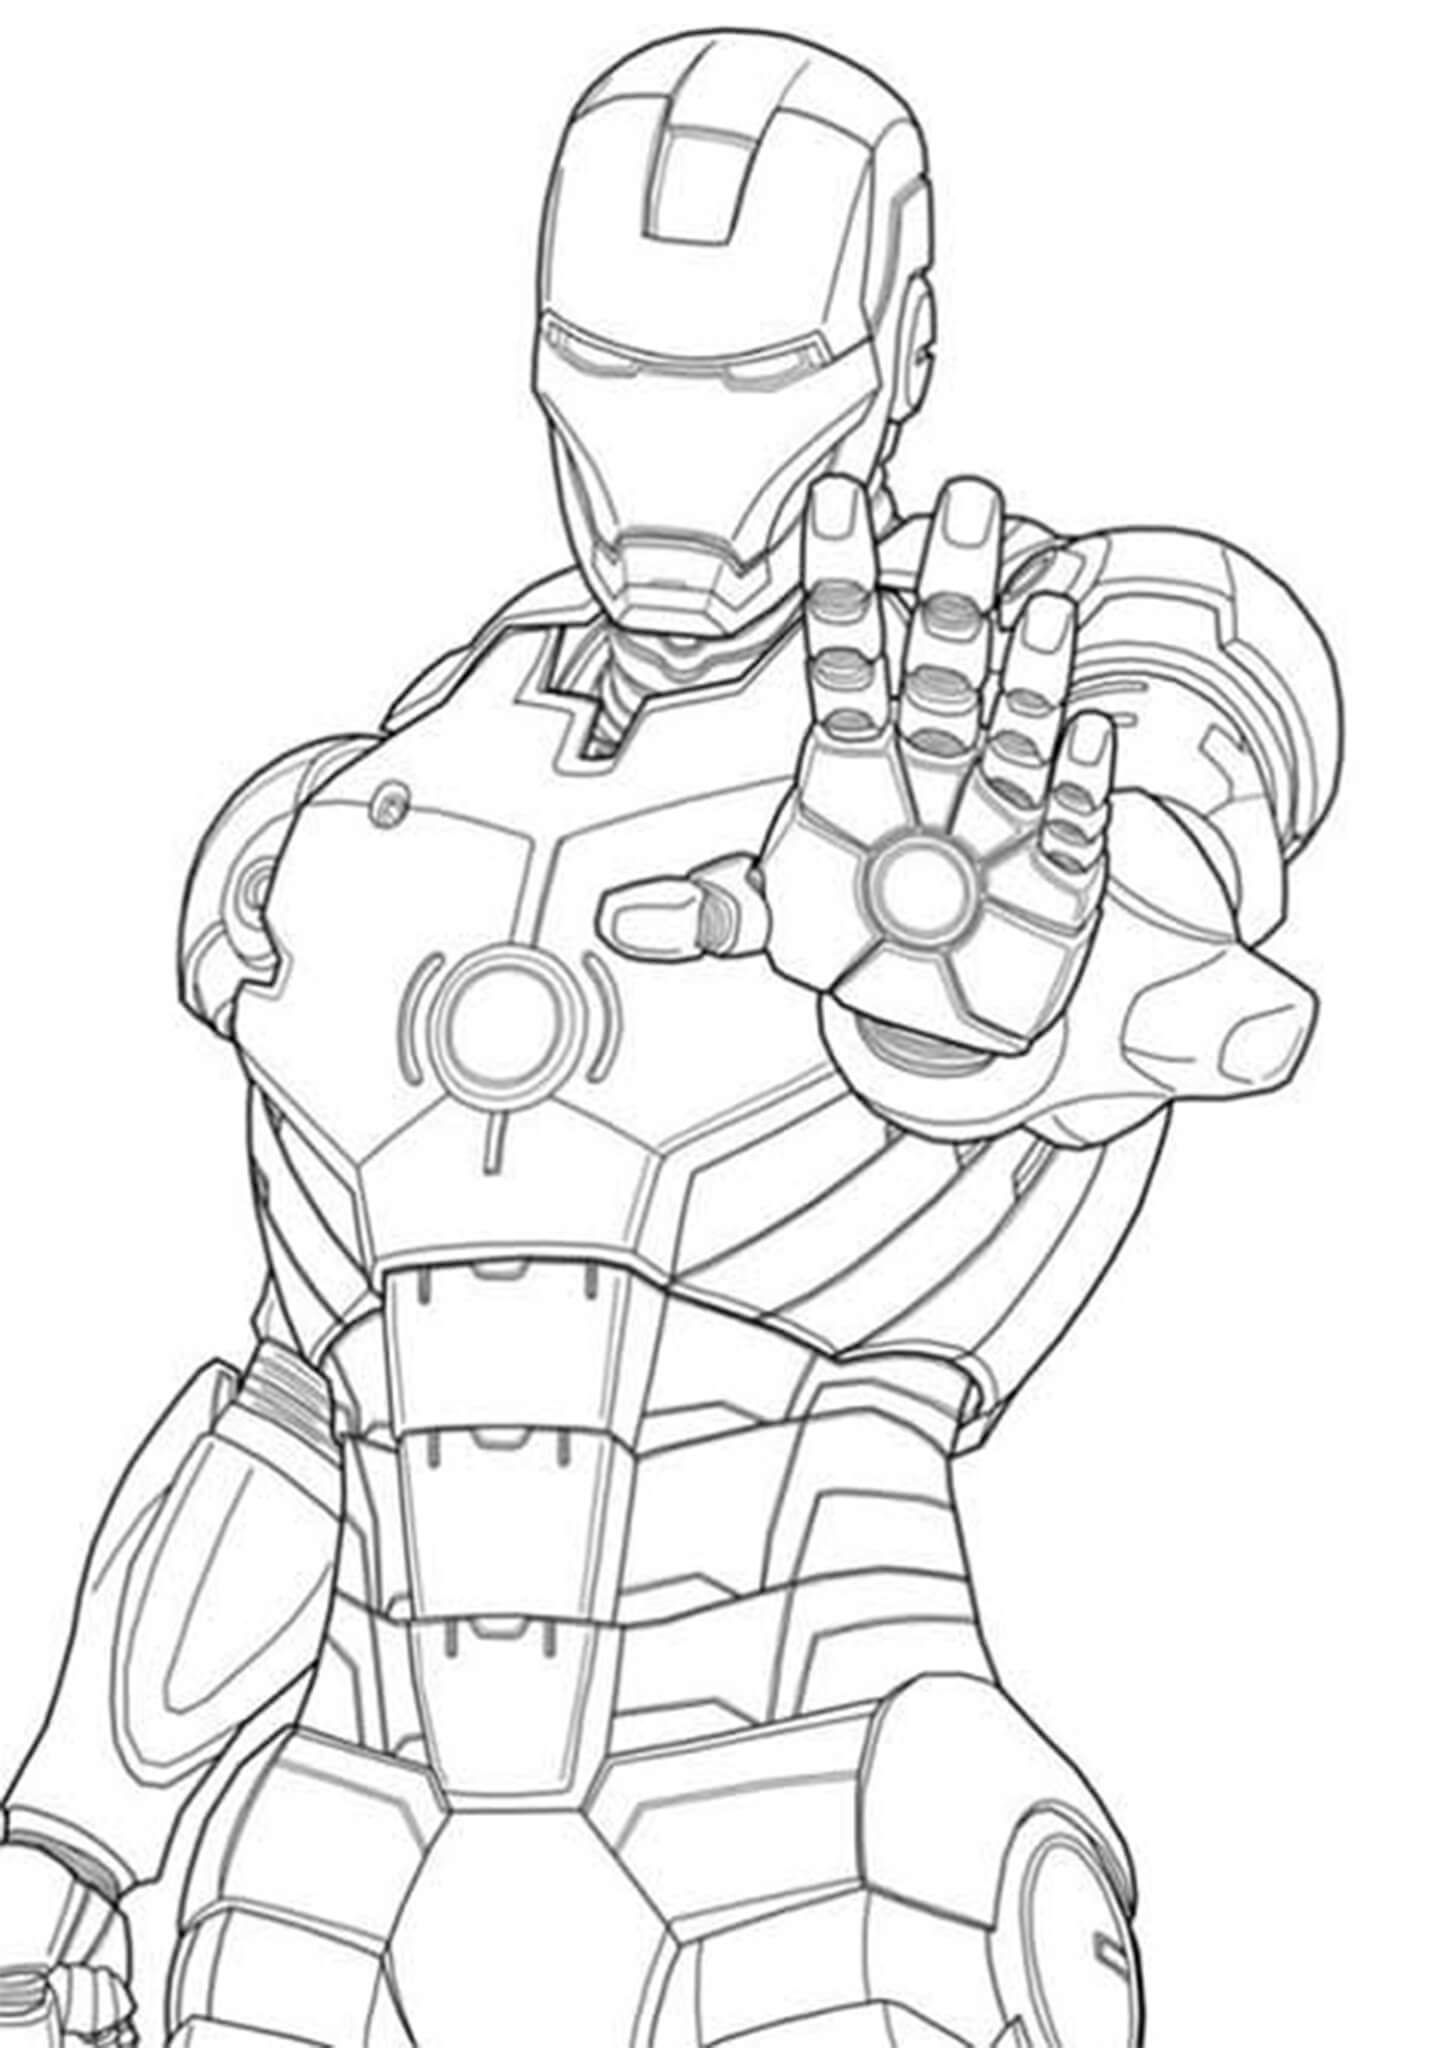 Free Easy To Print Iron Man Coloring Pages Superhero Coloring Pages Marvel Coloring Superhero Coloring